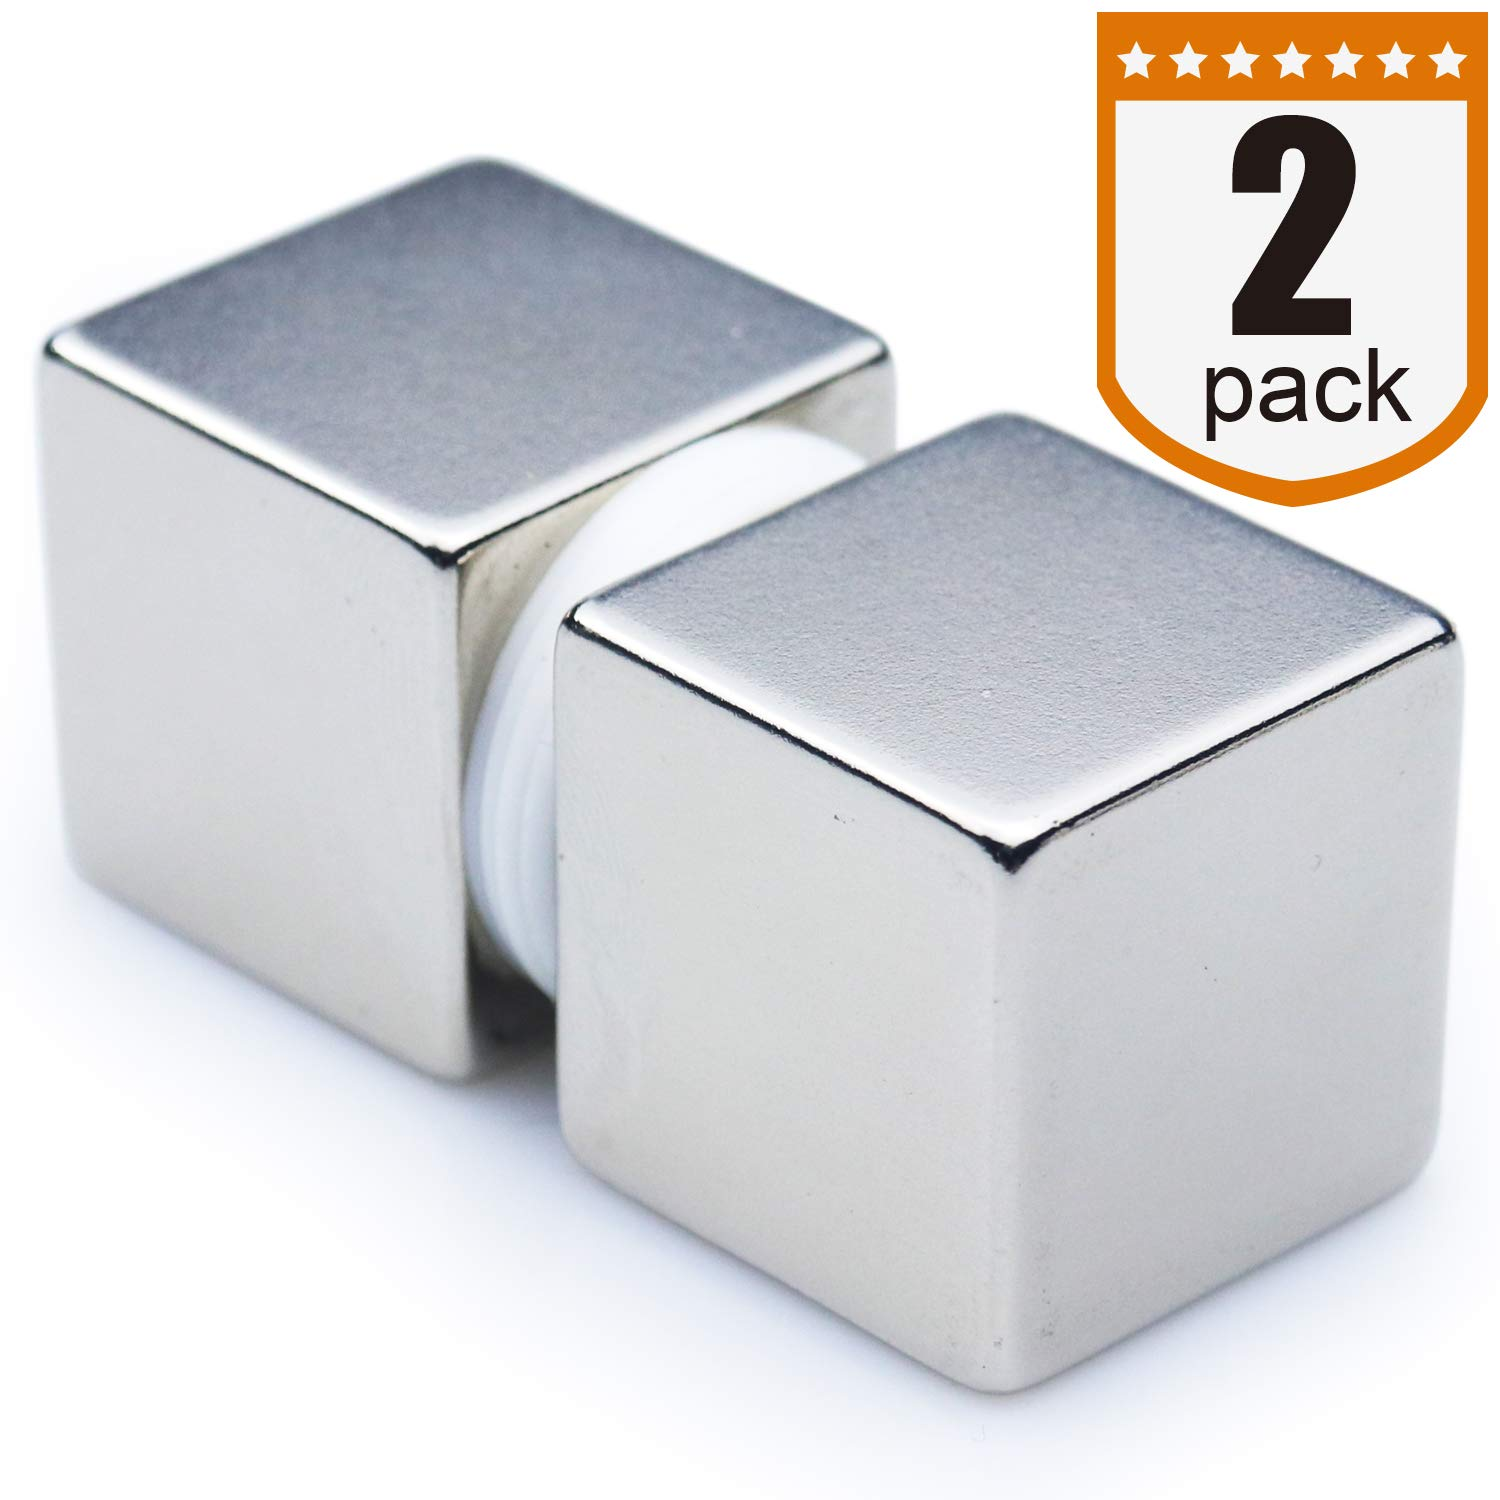 DIYMAG 1'' Cube Neodymium Magnets, Strongest One inch Cube Rare Earth Magnet - Grade N52, Pack of 2